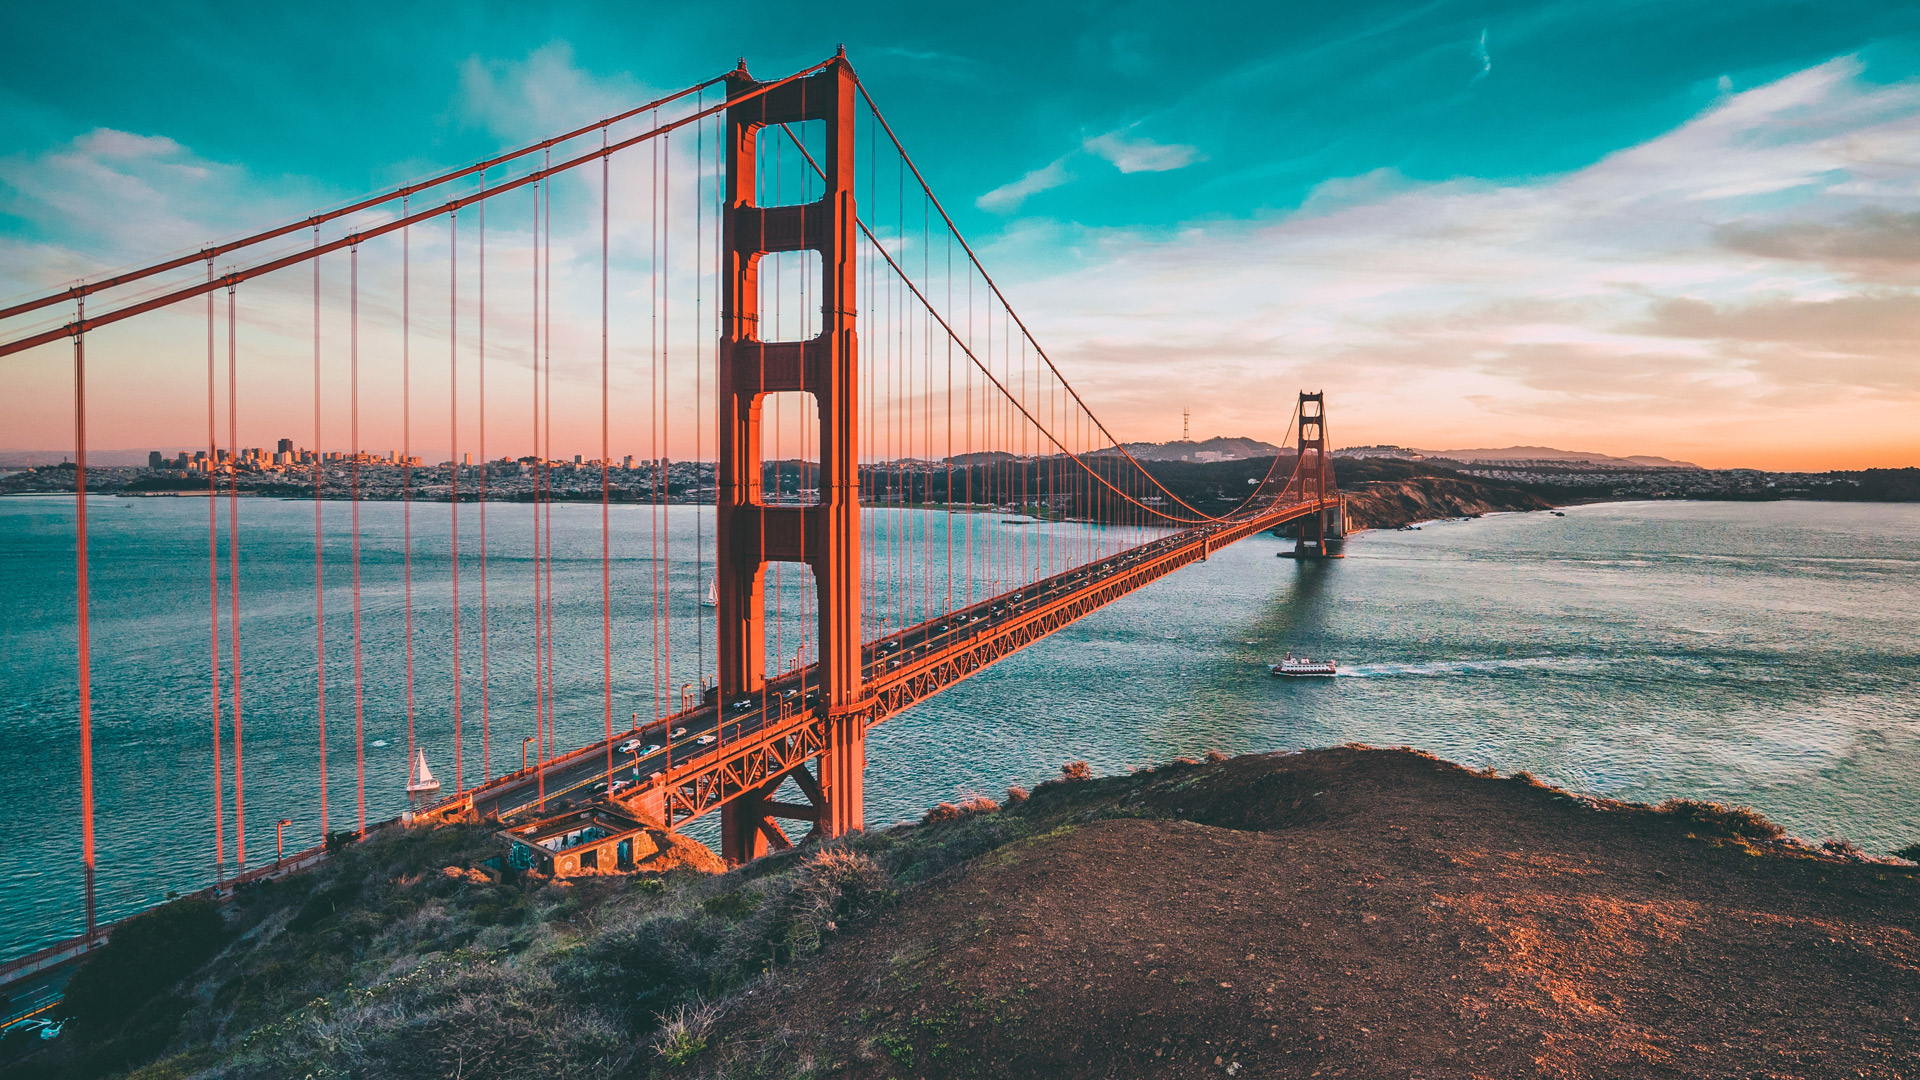 Cliff view of the Golden Gate Bridge in San Francisco, California, a popular tourist attraction